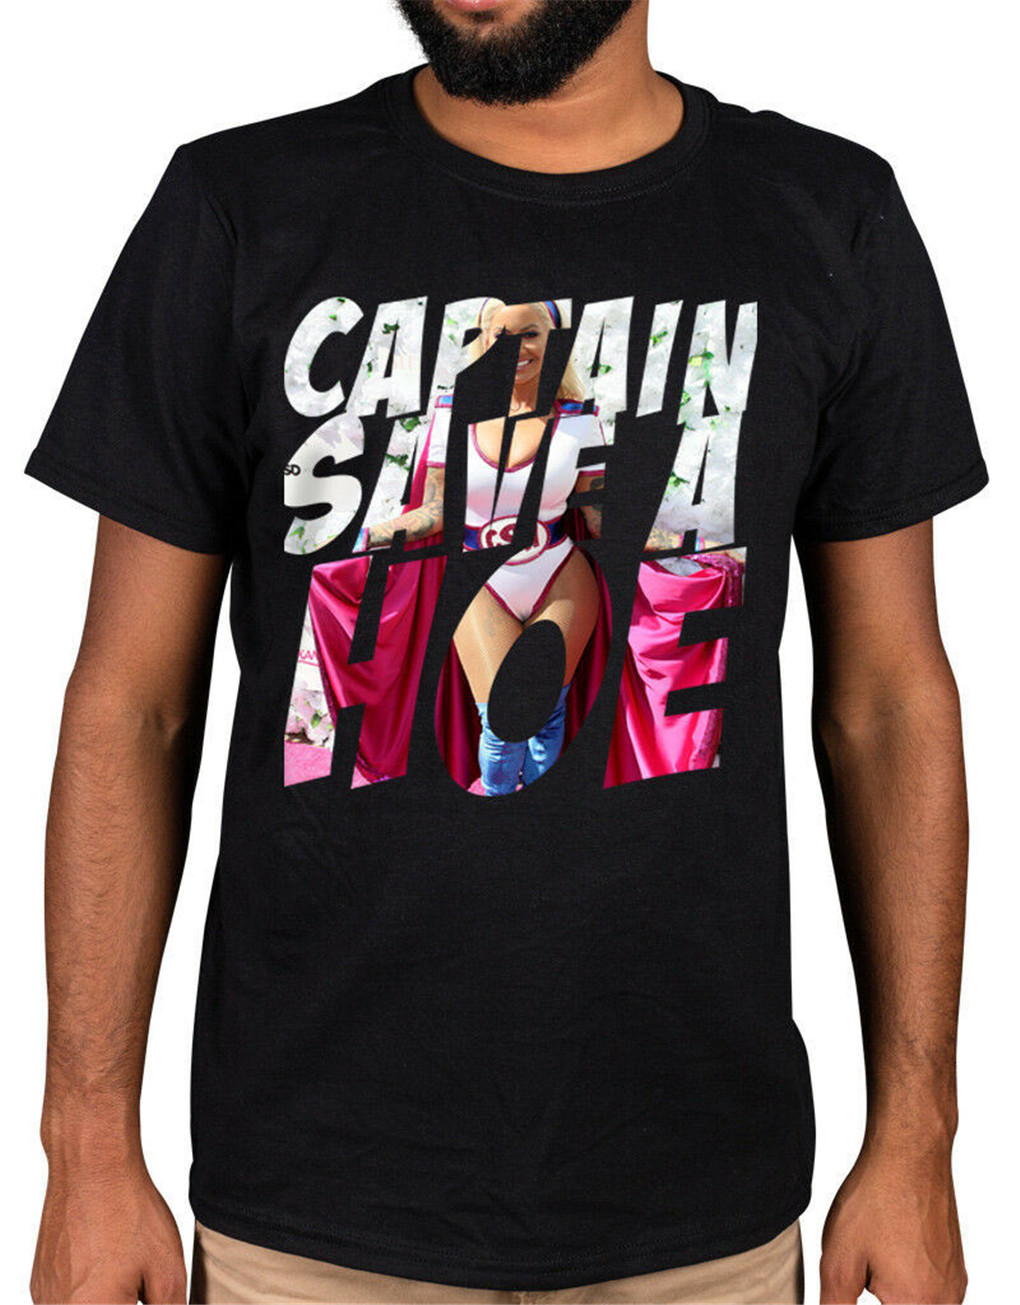 Captain Save A Hoe T-Shirt Slut Walk <font><b>21</b></font> <font><b>Savage</b></font> Amber Rose Tee Shirt Newest Fashion image